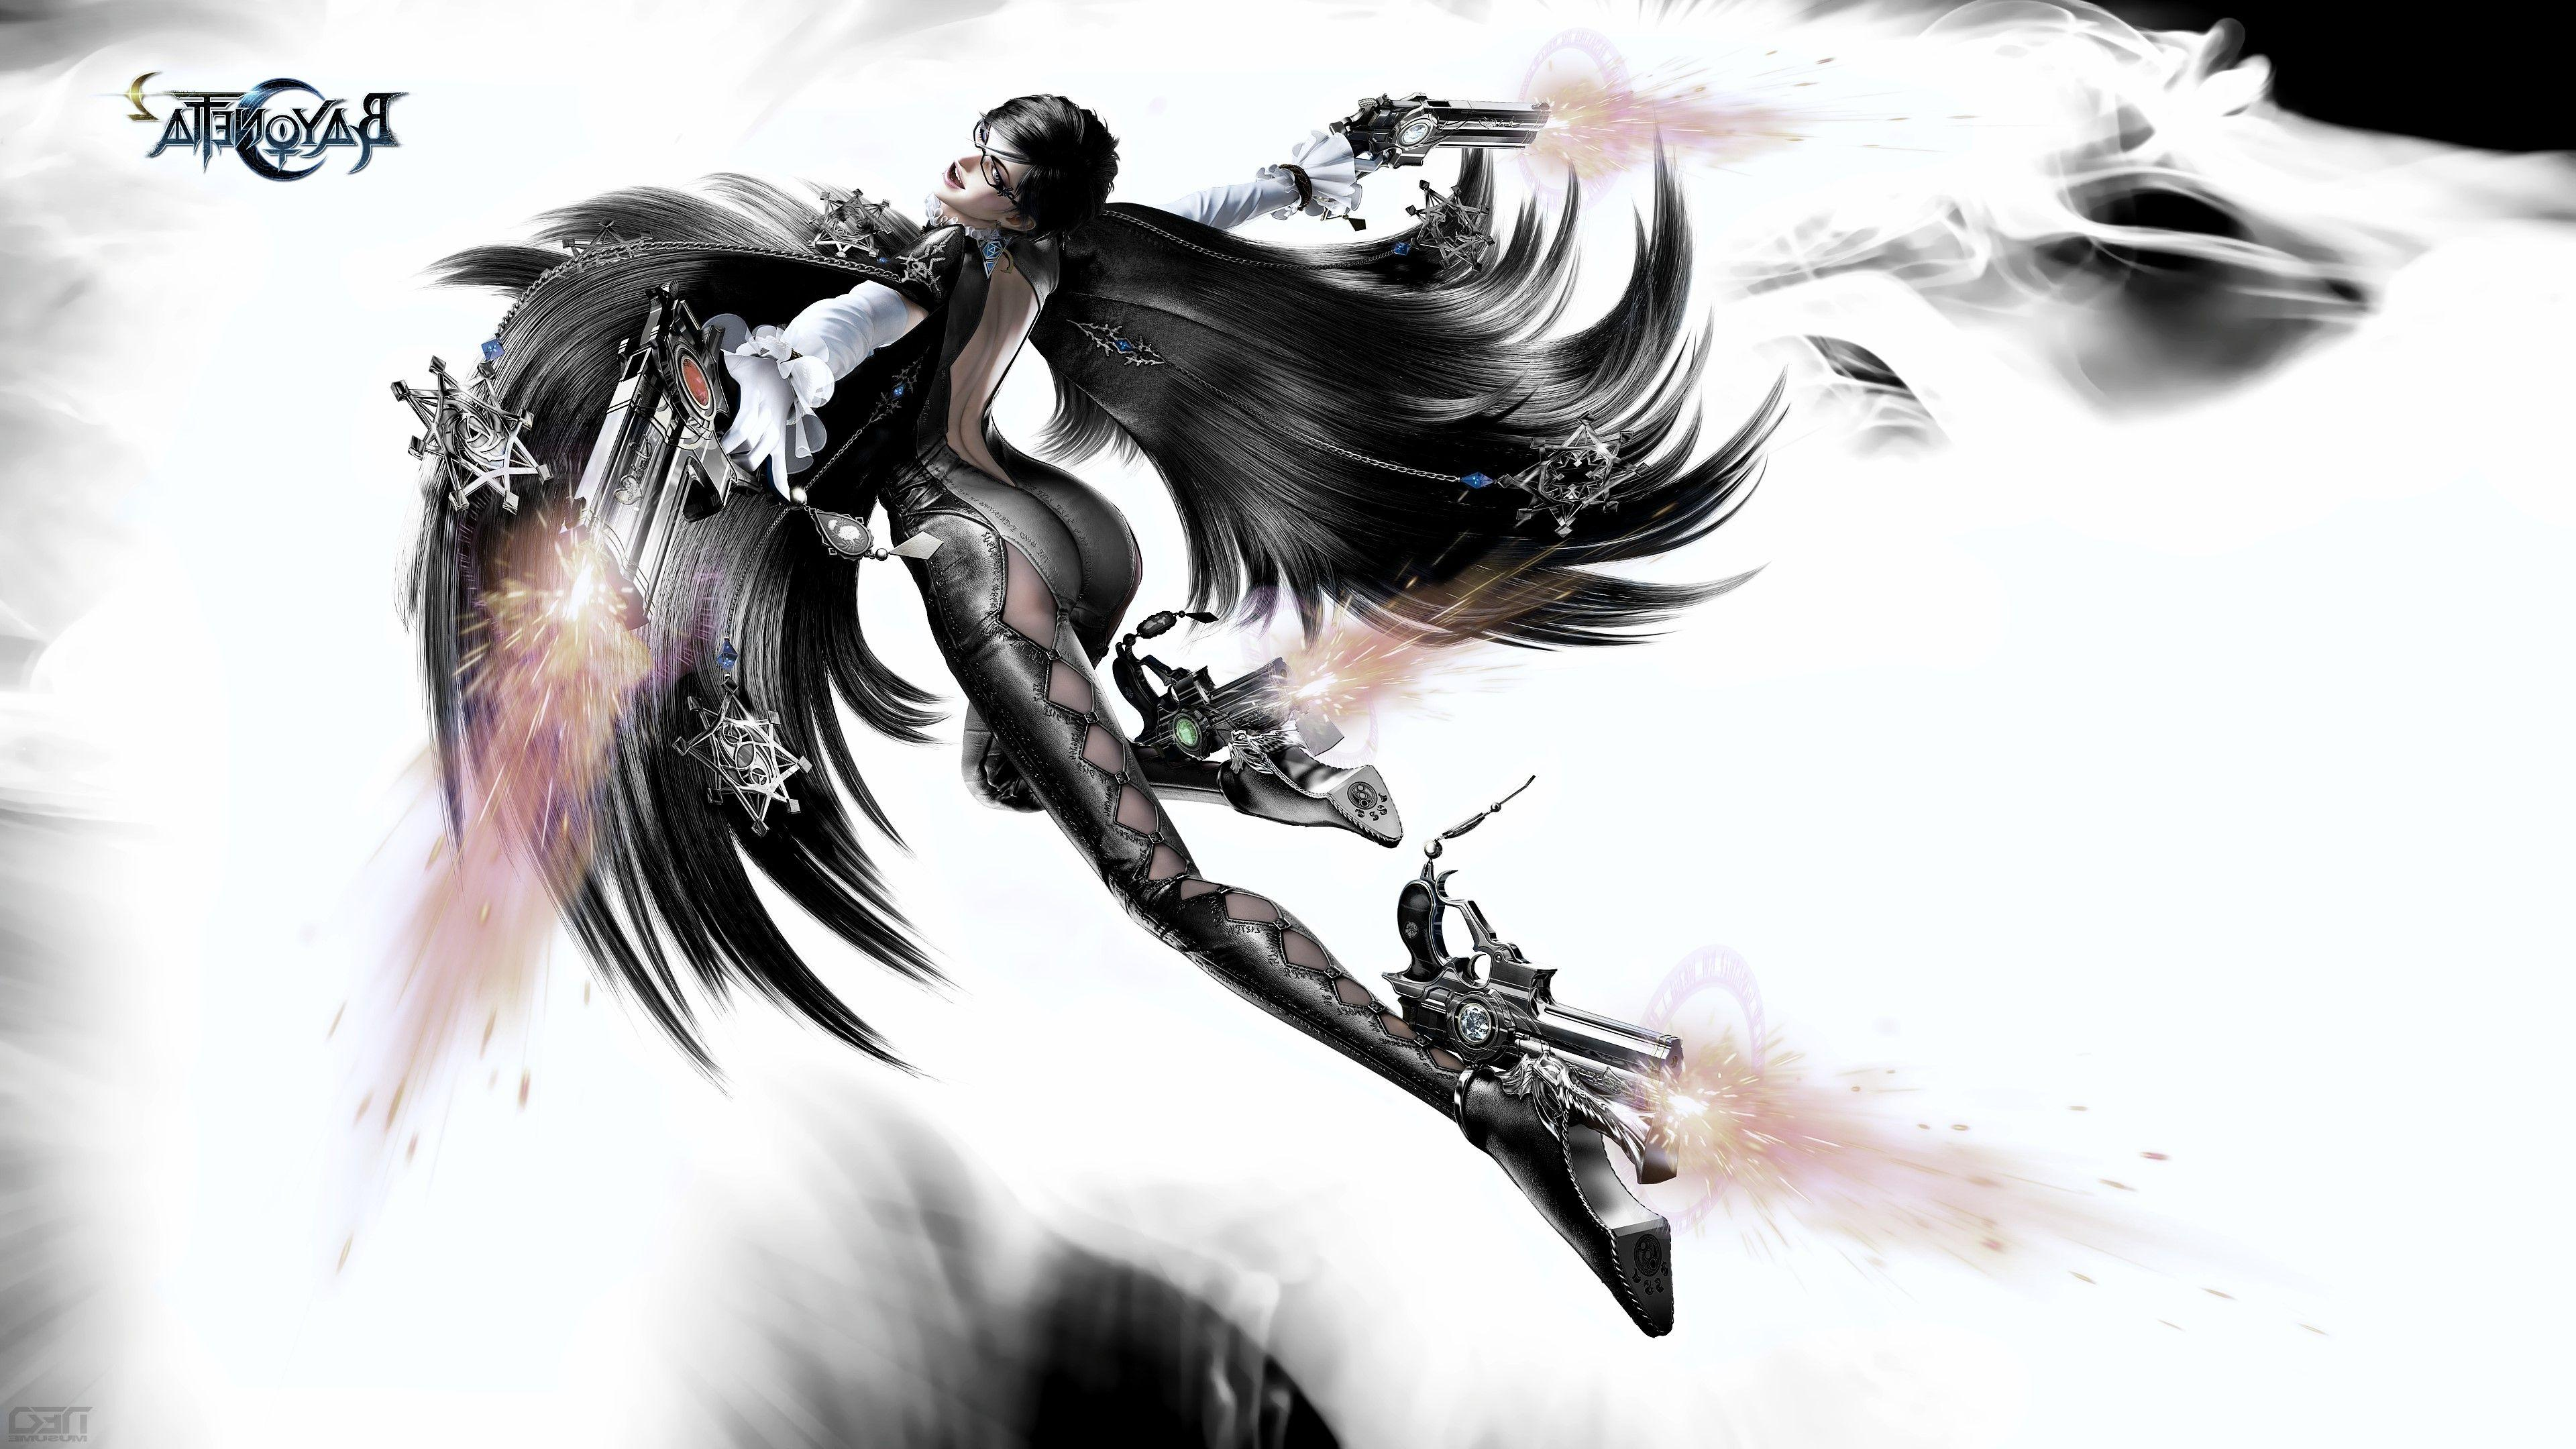 bayonetta 2 video games wallpapers and backgrounds